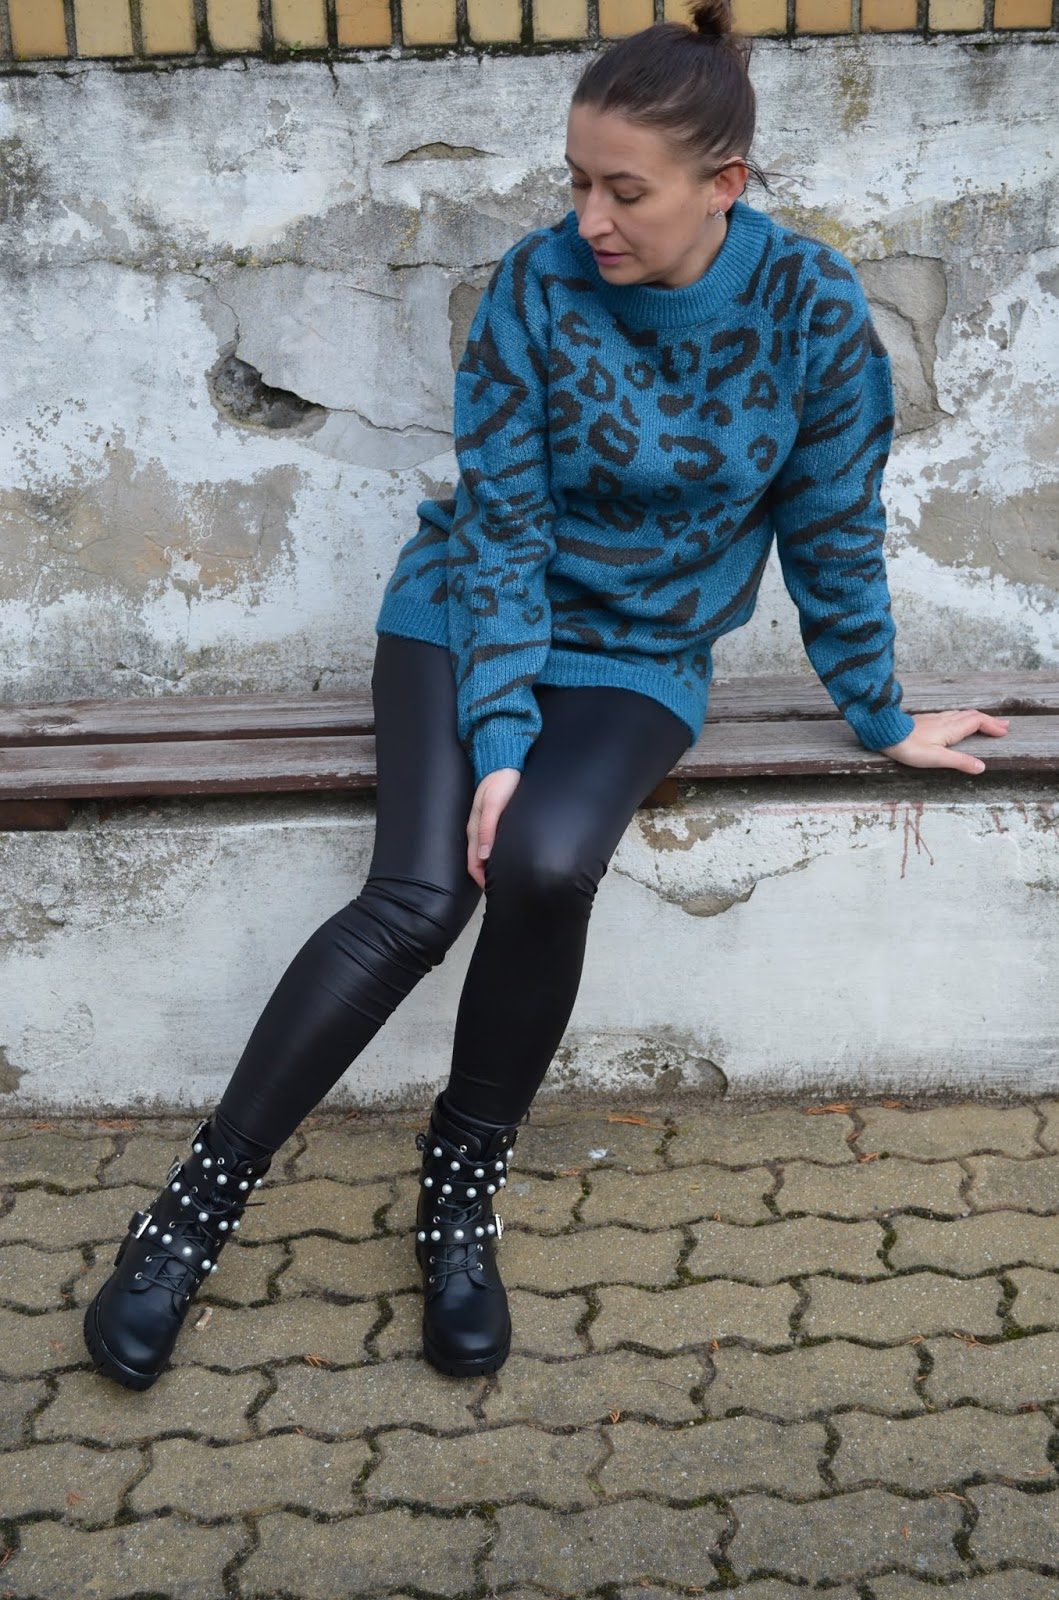 @adrianastyle_stylist, Bonprix Animal Print Sweater, Swetr Bonprix, Bonprix Leather Look Leggings, Botki Bonprix, Leginsy Bonprix, Bonprix Heavy Boots, www.adriana-style.com, stylizacja, Zwierzęcy print, Animal Print, Patterns